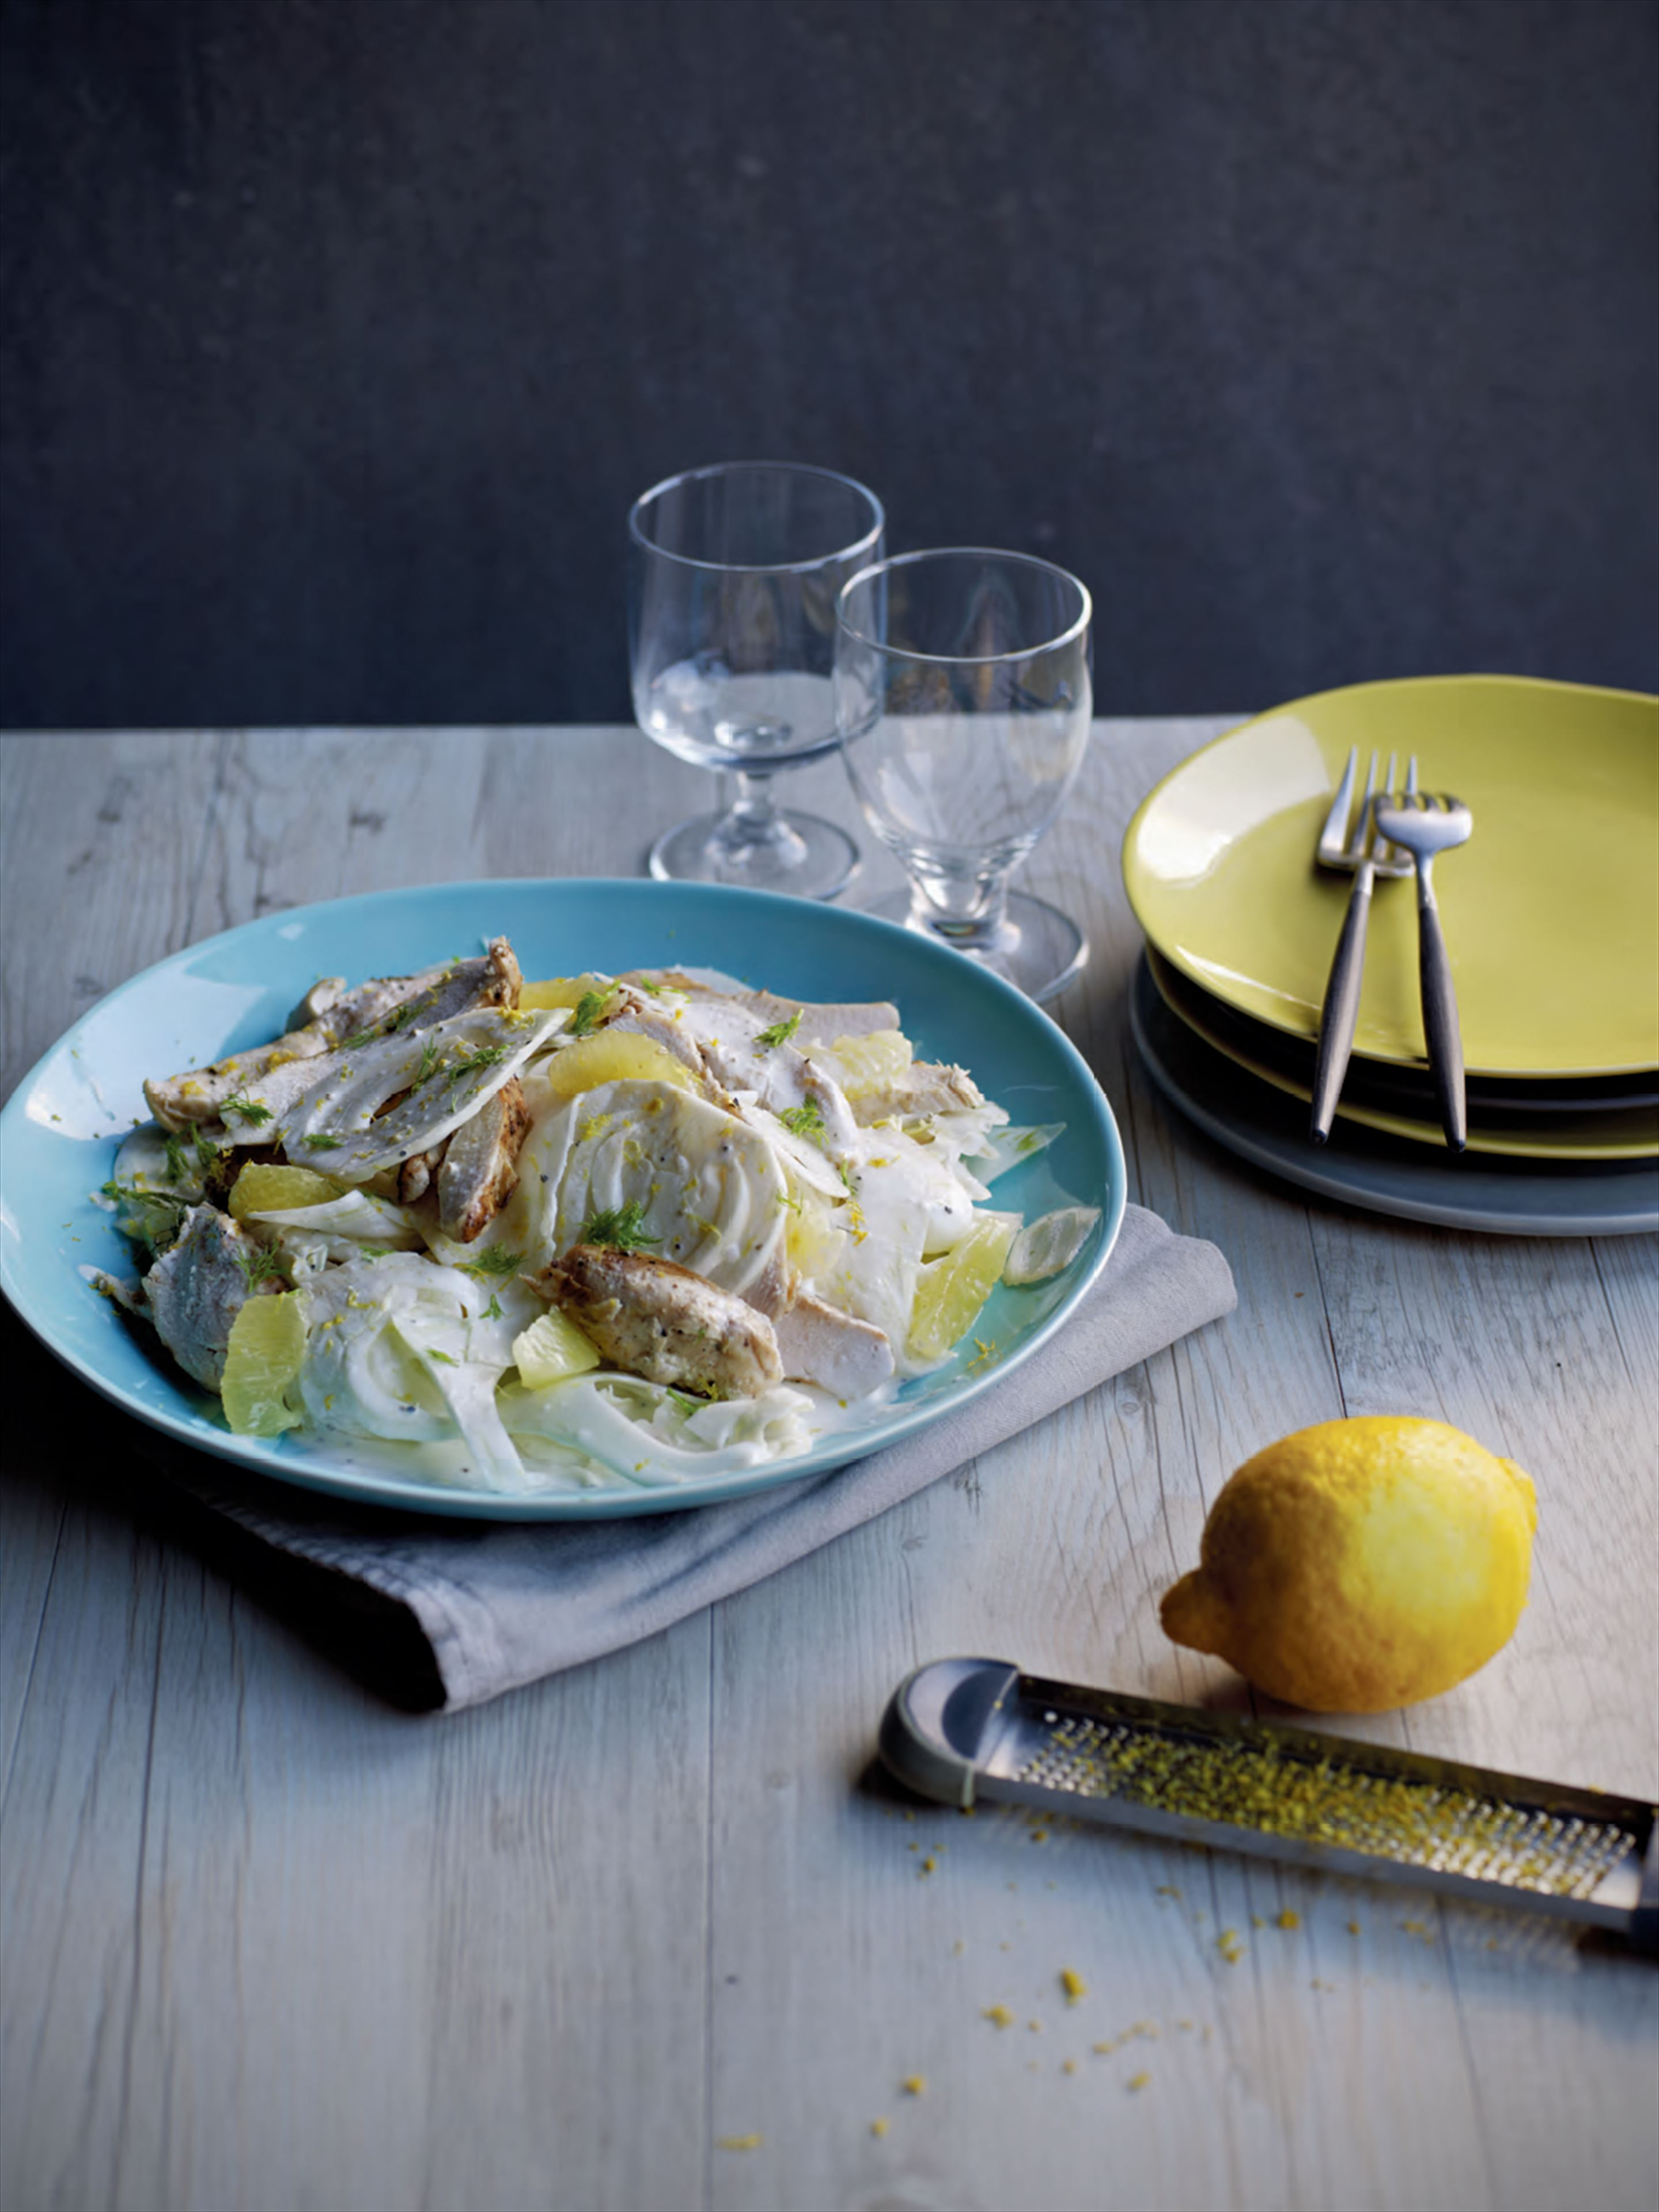 Pan-fried chicken with lemon & fennel salad